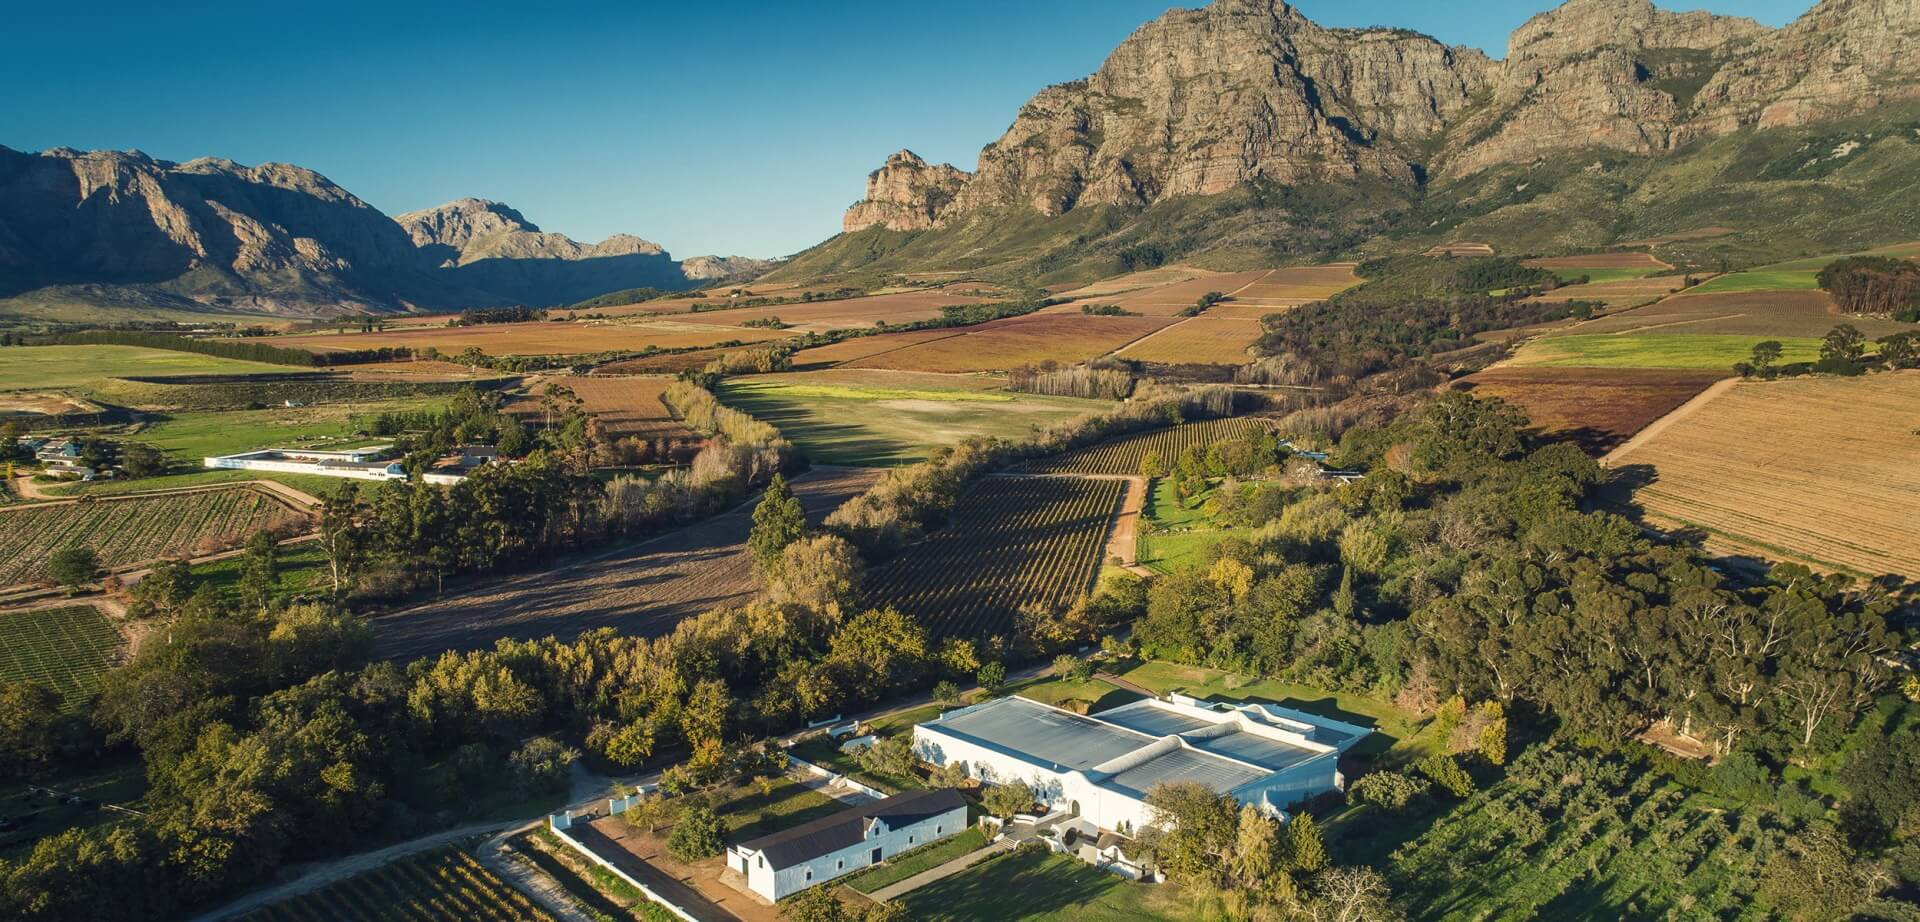 Aerial view of the Plaisir de Merle wine estate in Franschhoek, with mountains and vineyards in the background.